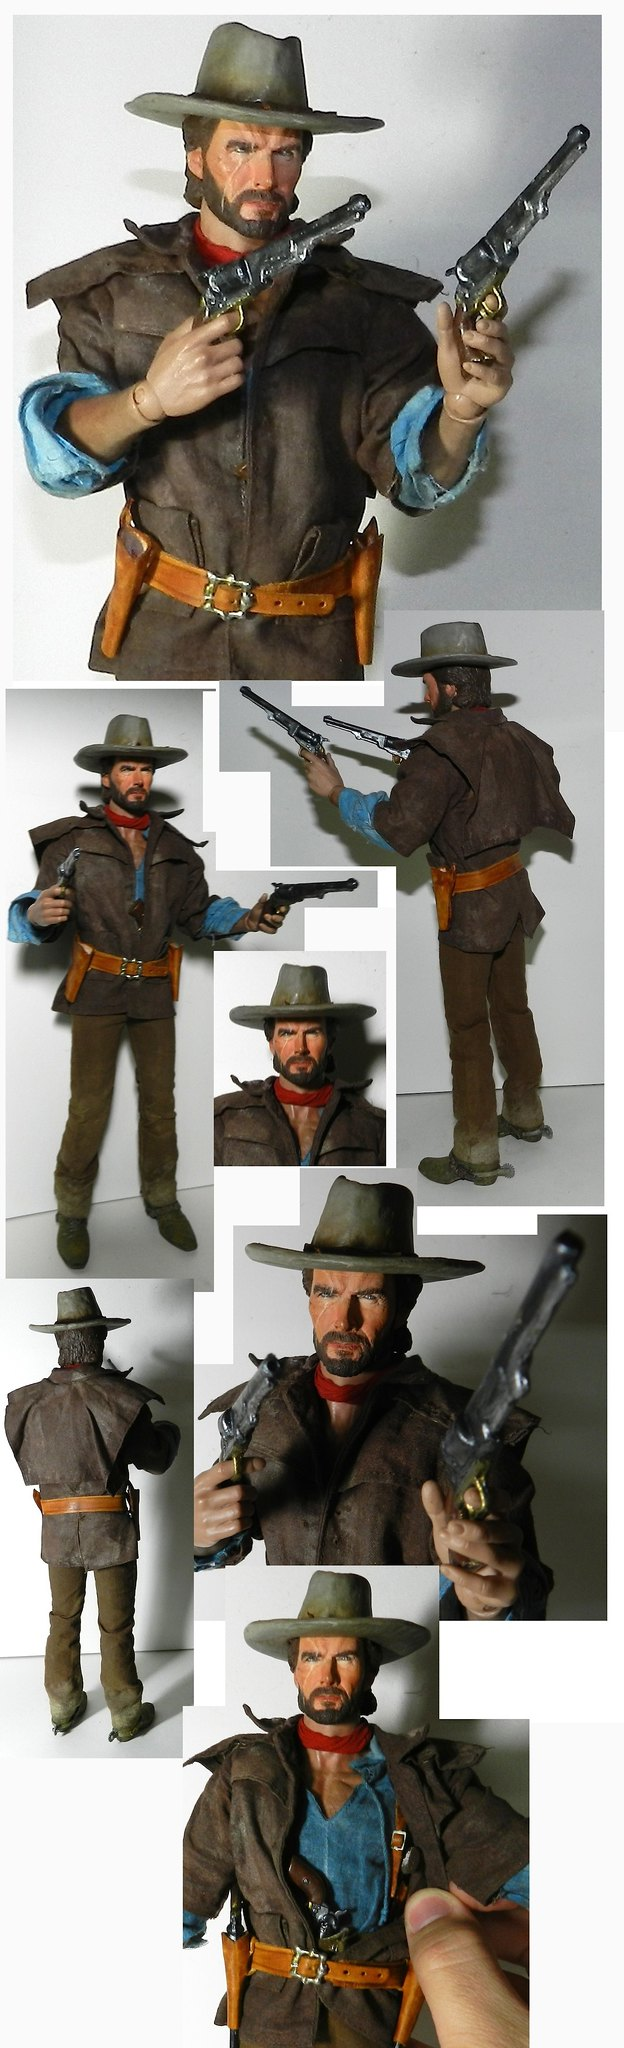 The Outlaw Josey Wales (Clint Eastwood) 1/6th custom figure